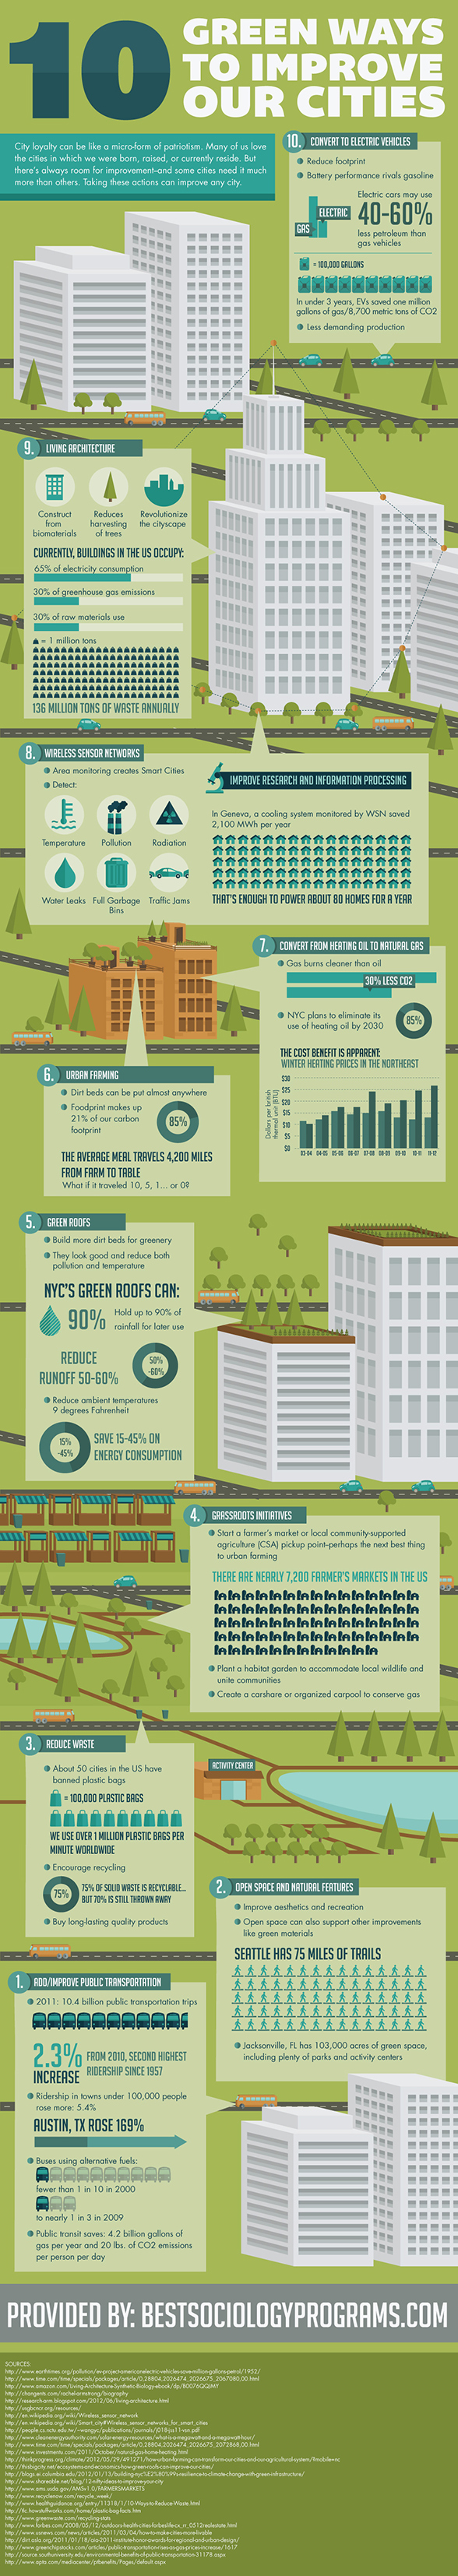 Green Ways to Improve Your City - improve-your-city-infographic